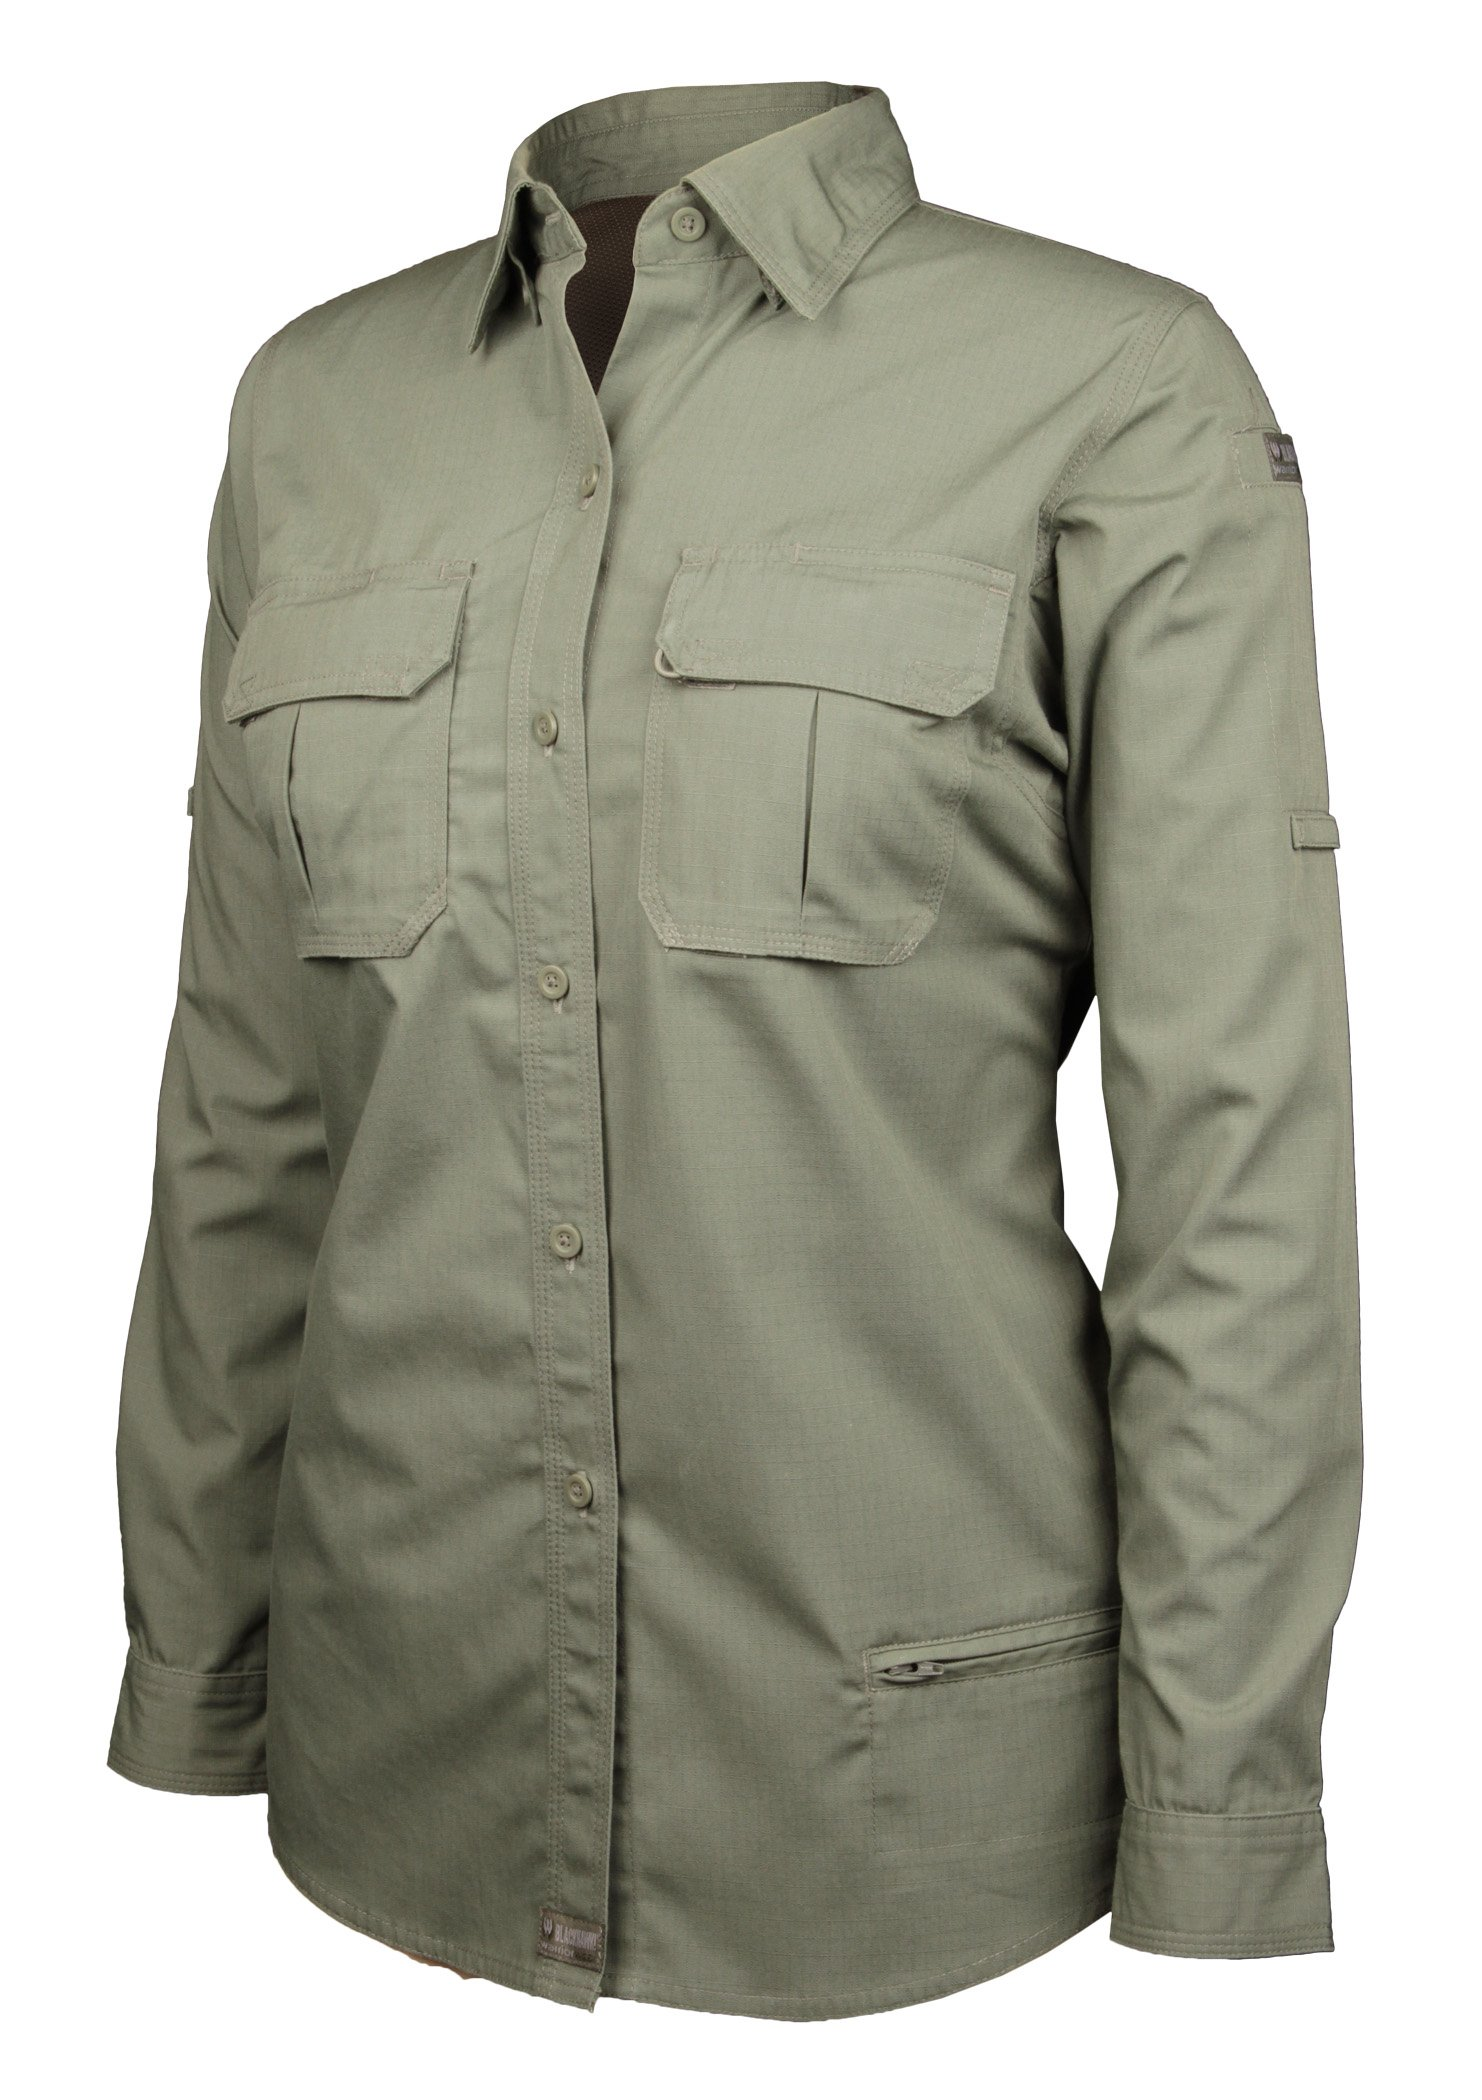 Blackhawk! Women's Lightweight Tactical Long Sleeve Shirt, Olive Drab, Large by BLACKHAWK!